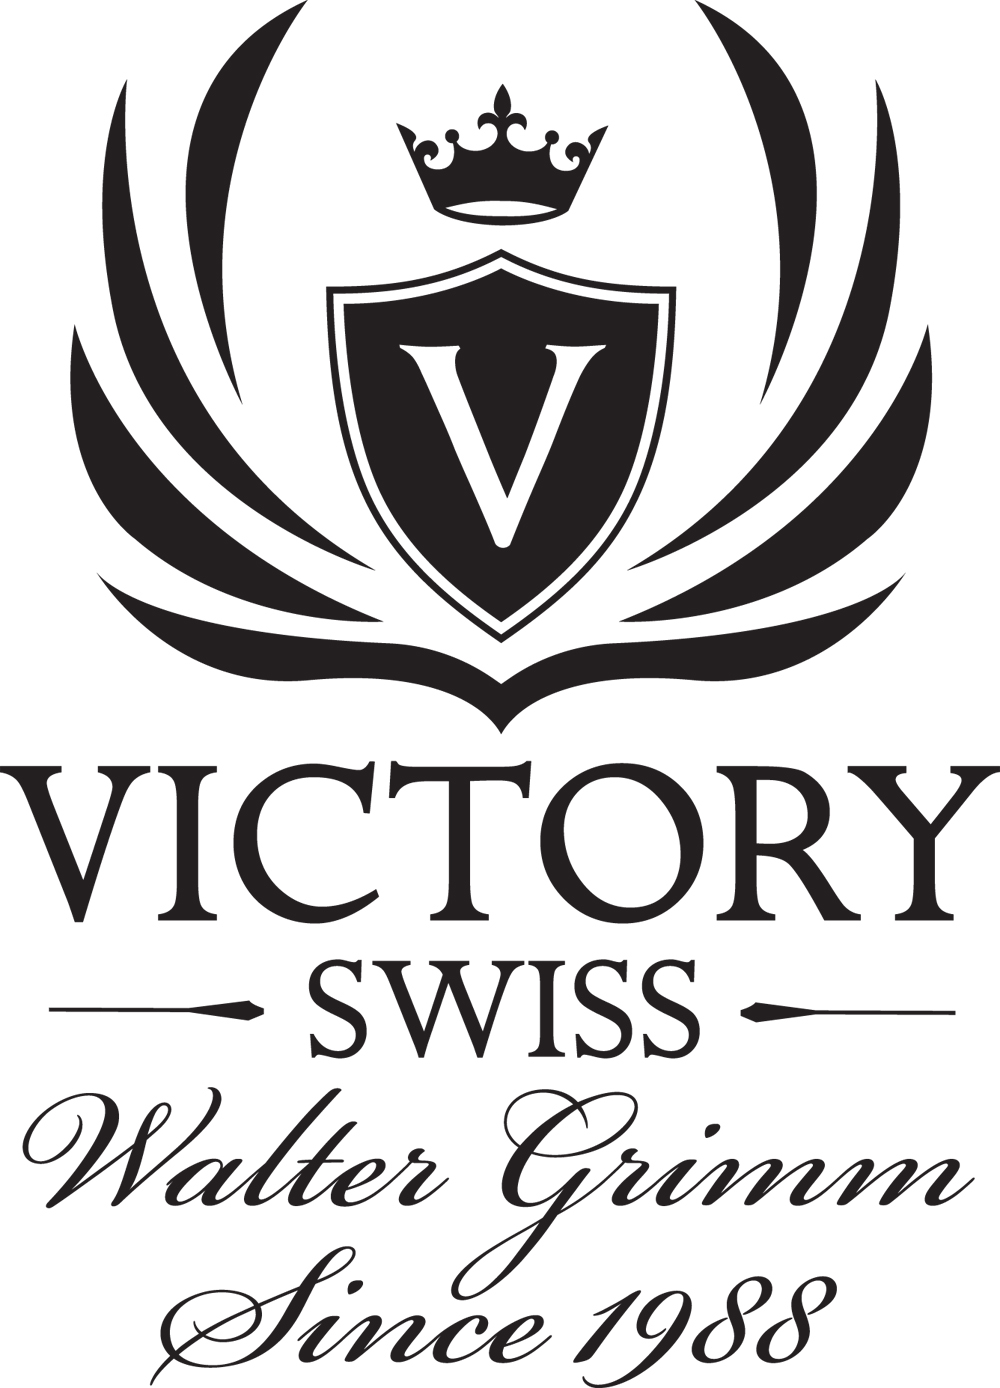 VICTORY walter grimm